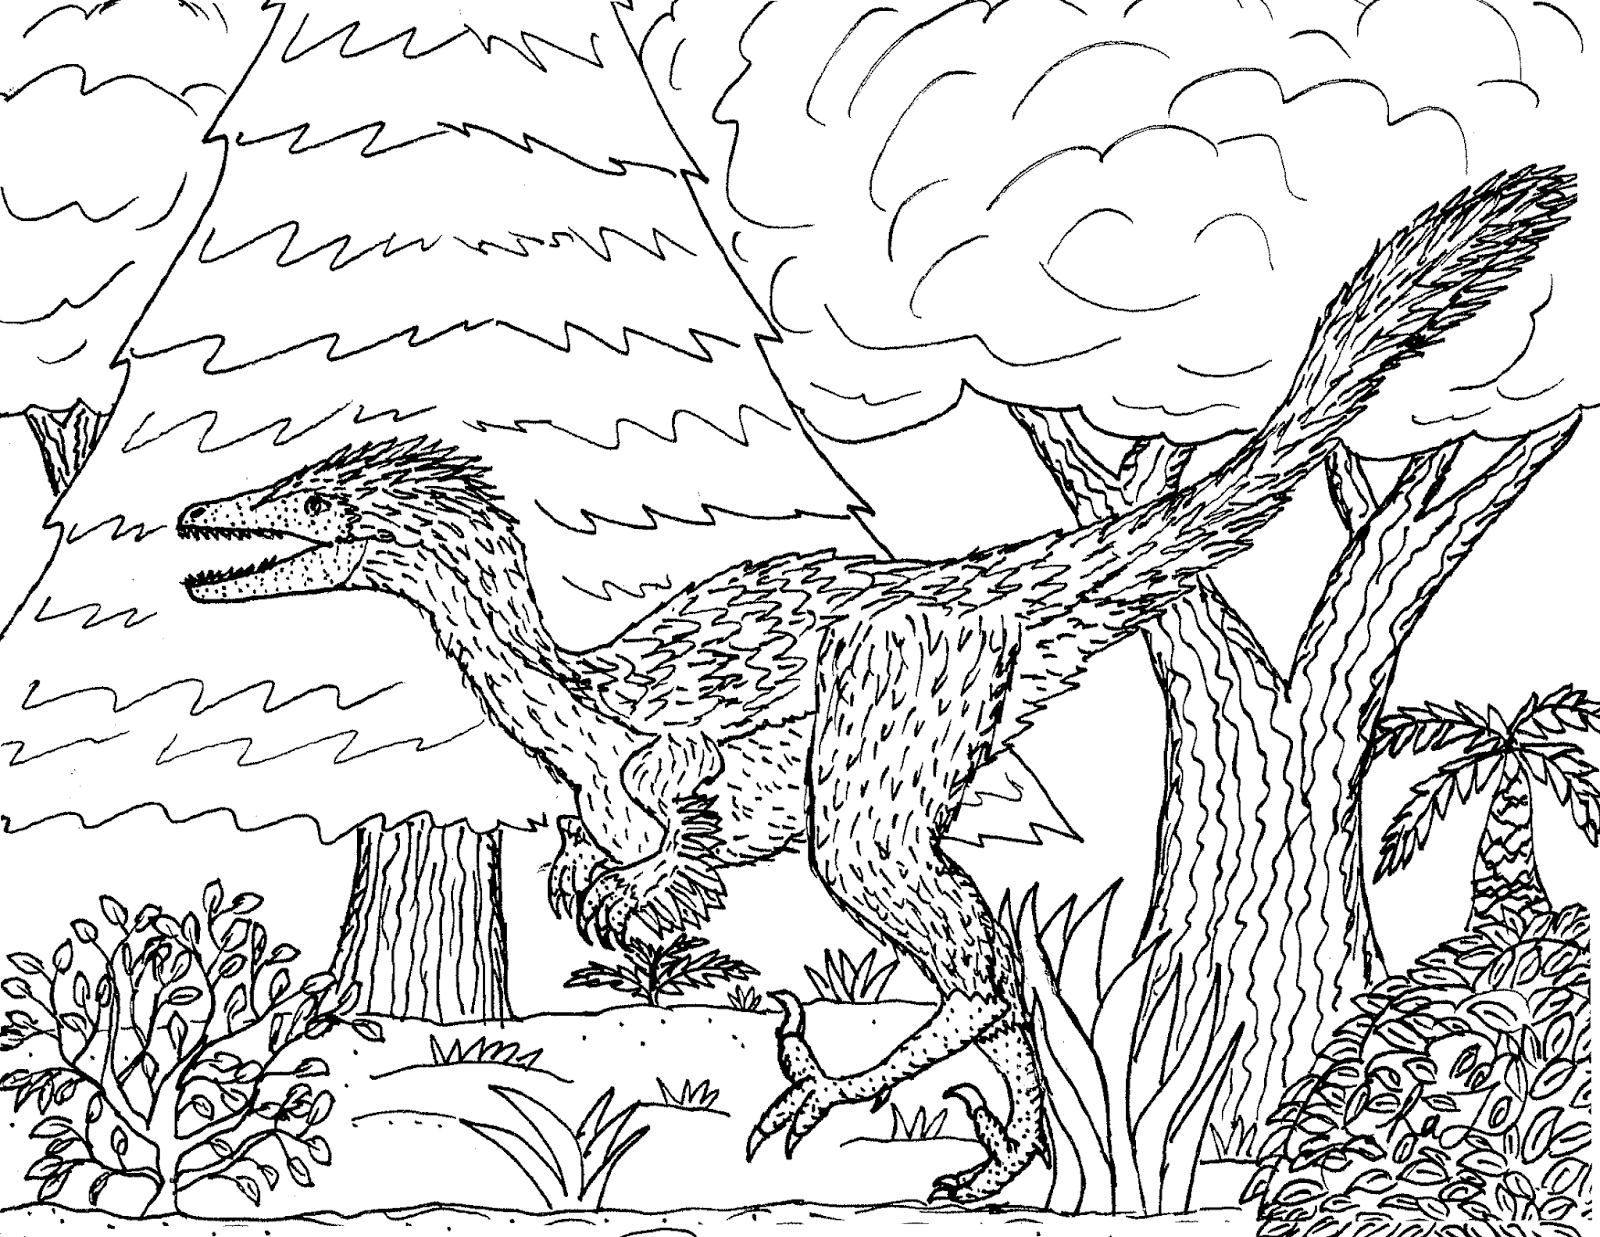 pictures of troodon dinosaur troodon by taipu556 on deviantart of troodon dinosaur pictures